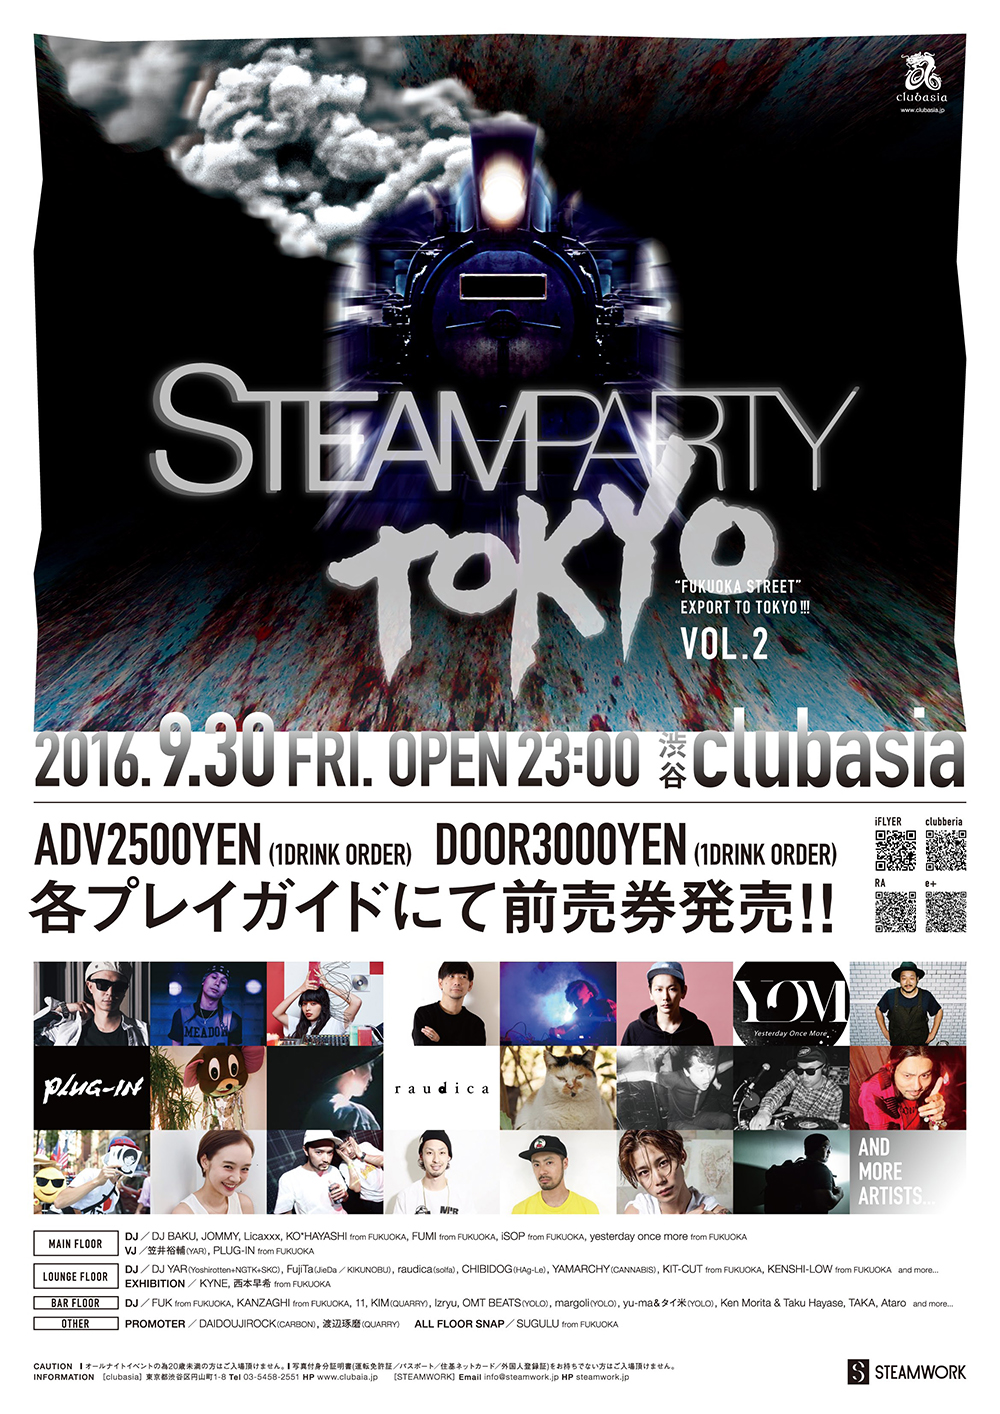 steamparty